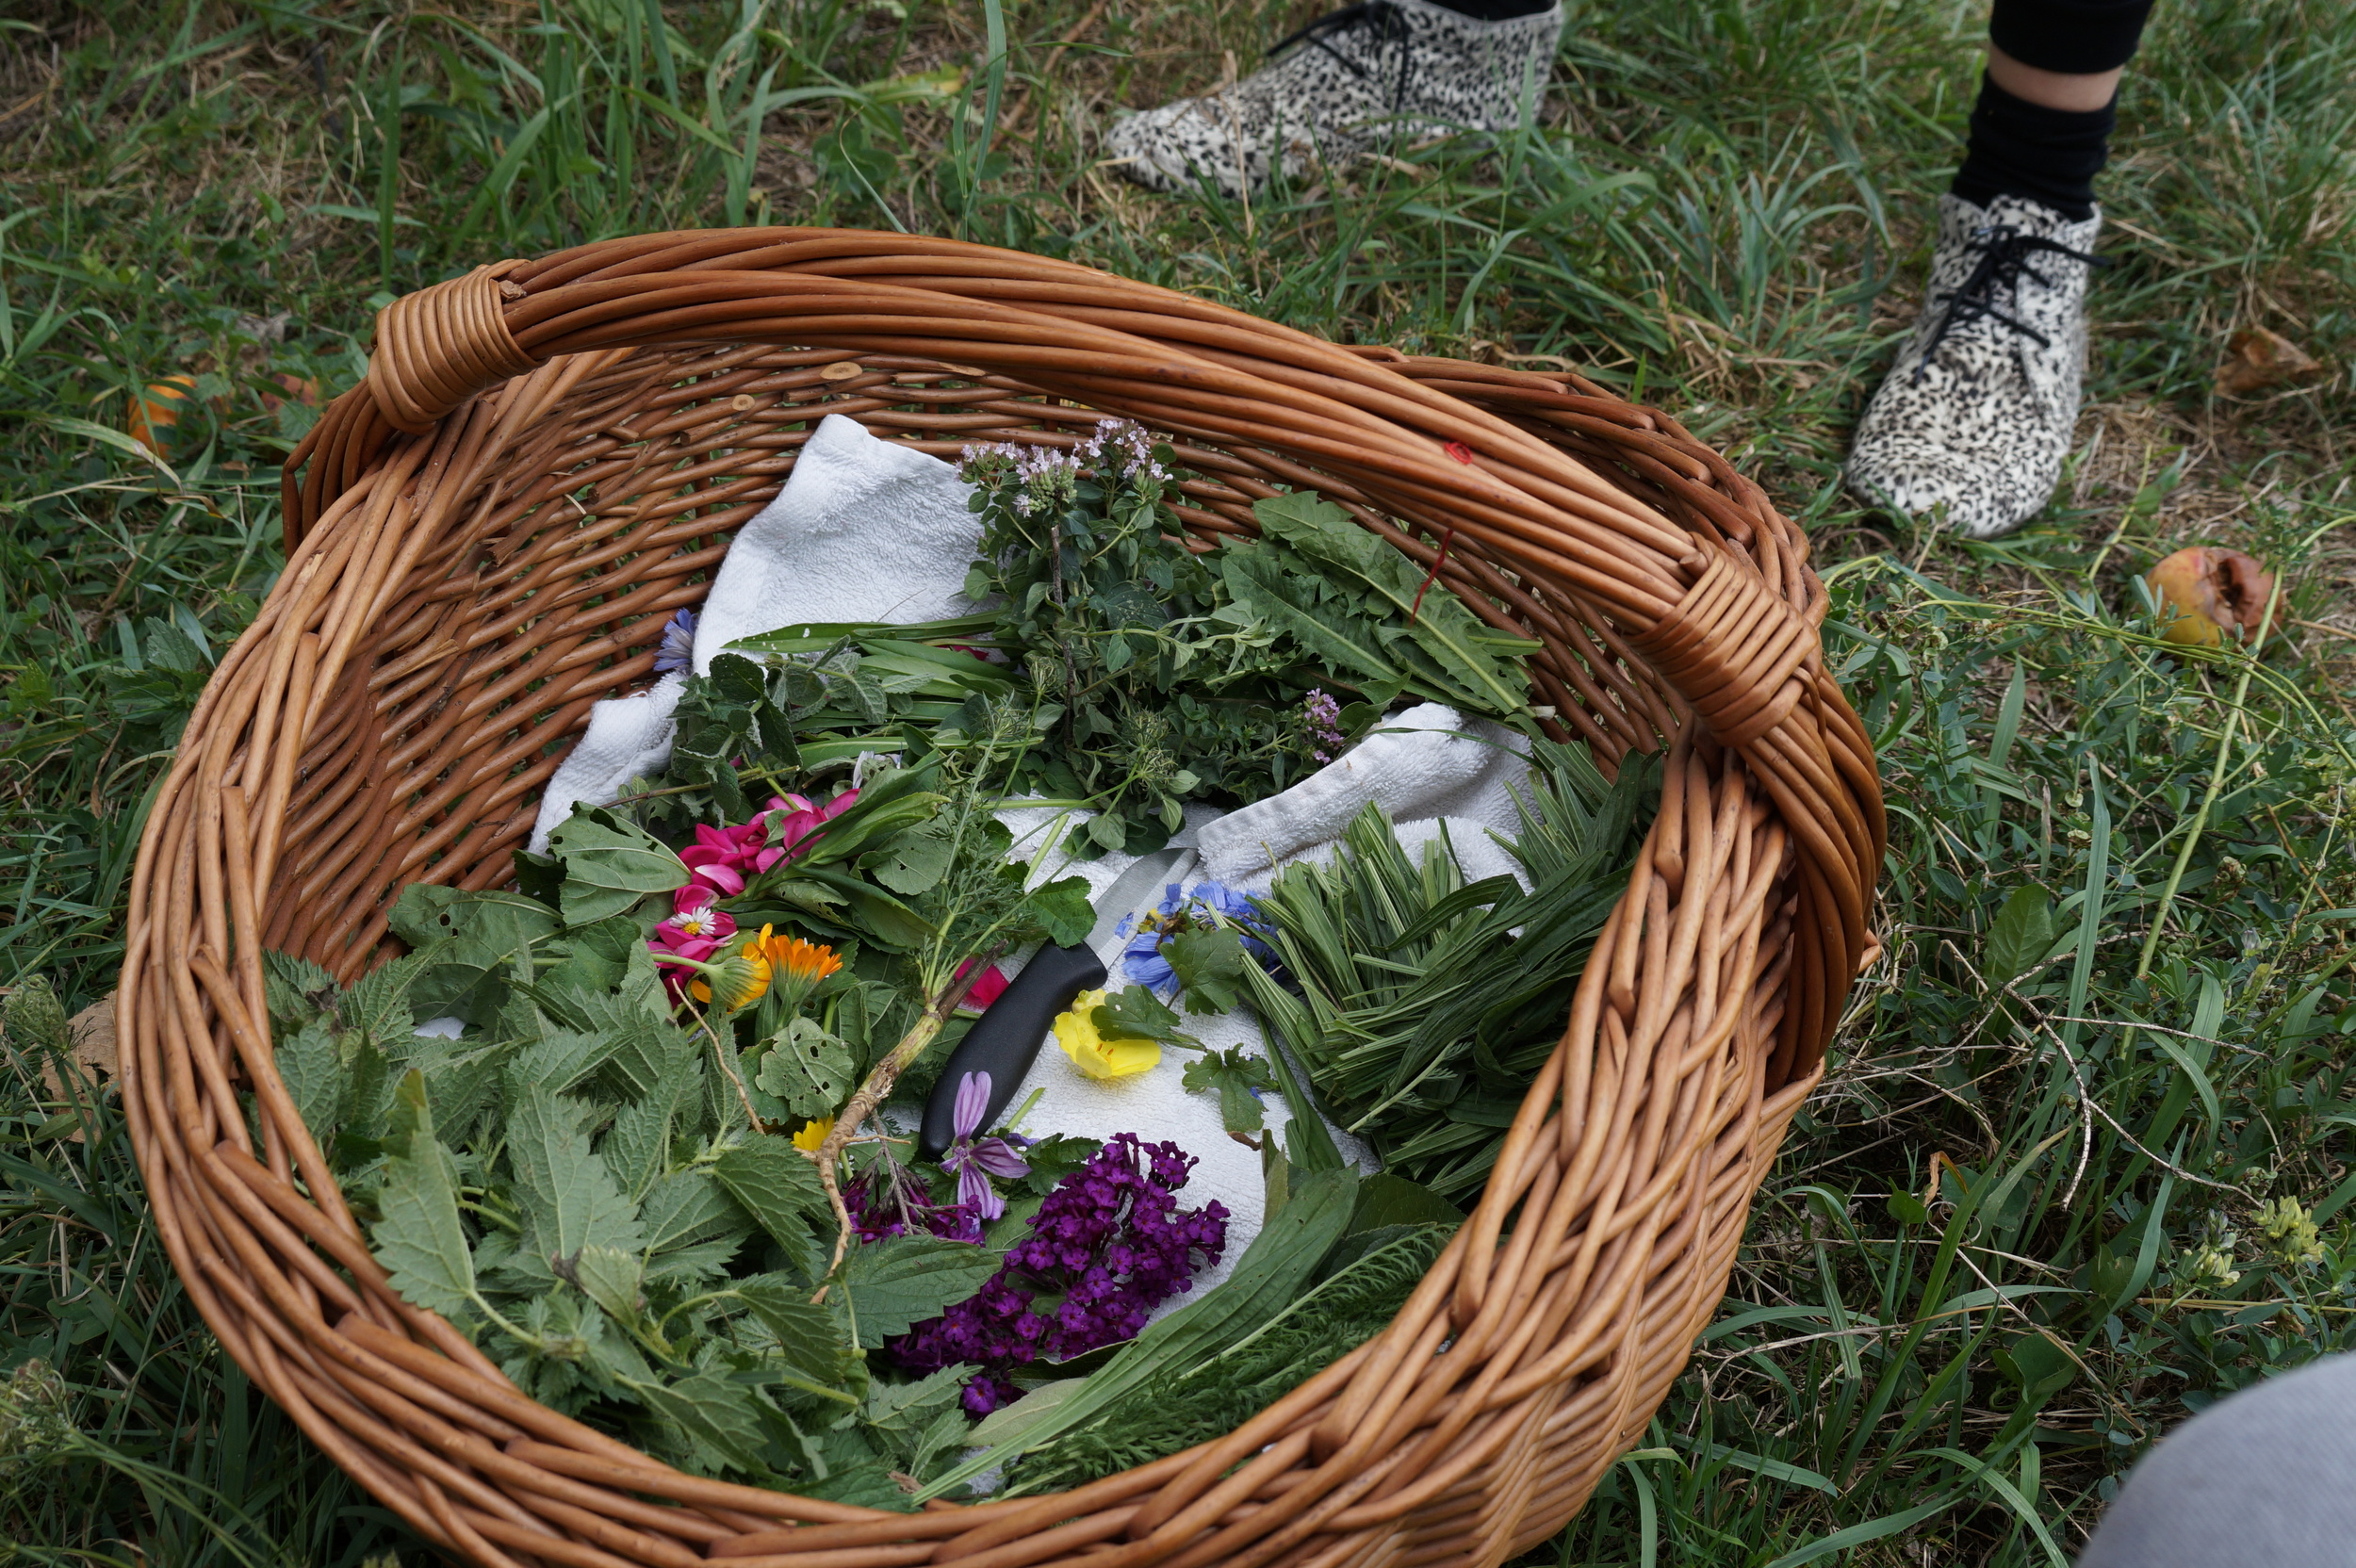 We attended a wild-herb foraging cooking class!